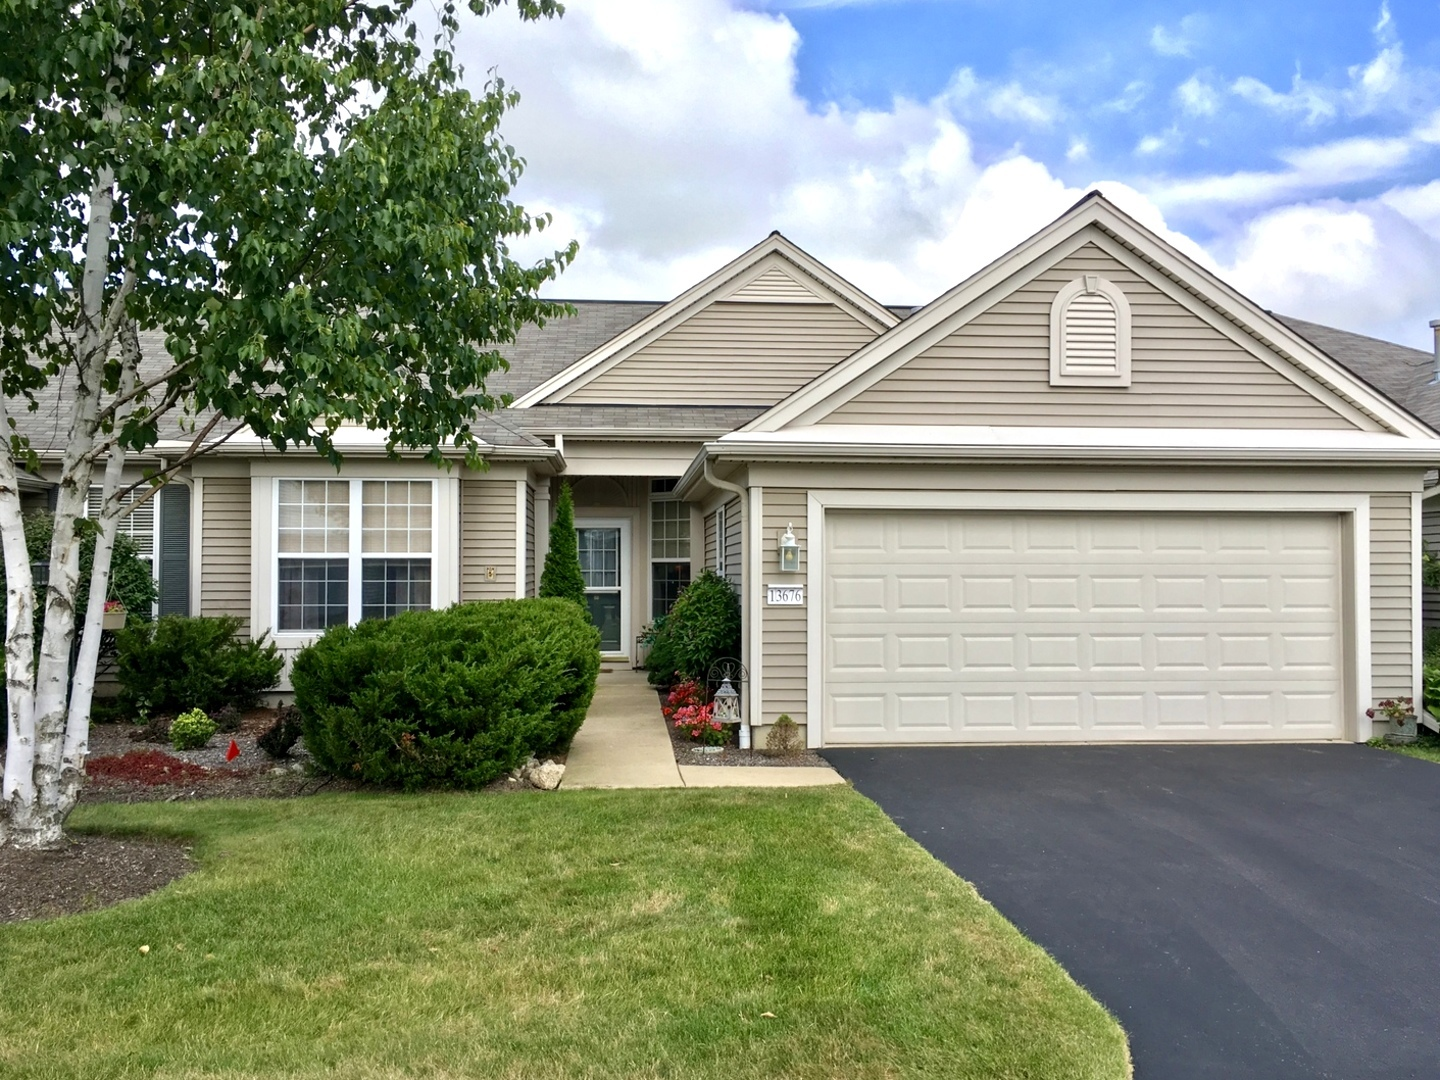 Photo for 13676 Briargate Drive, HUNTLEY, IL 60142 (MLS # 10136676)